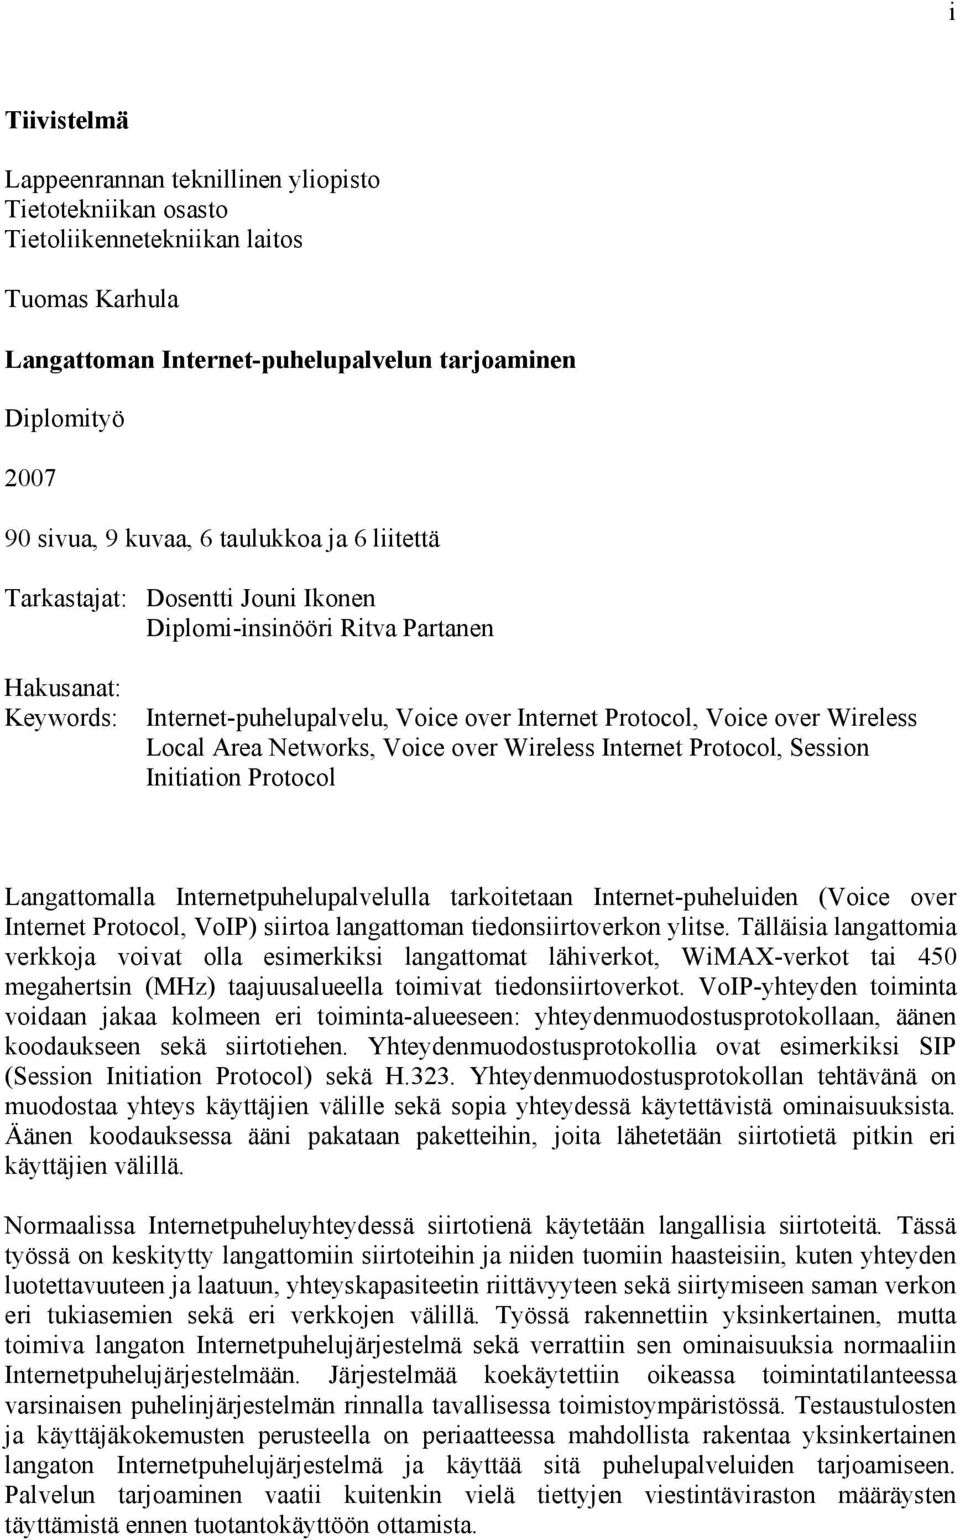 Networks, Voice over Wireless Internet Protocol, Session Initiation Protocol Langattomalla Internetpuhelupalvelulla tarkoitetaan Internet-puheluiden (Voice over Internet Protocol, VoIP) siirtoa